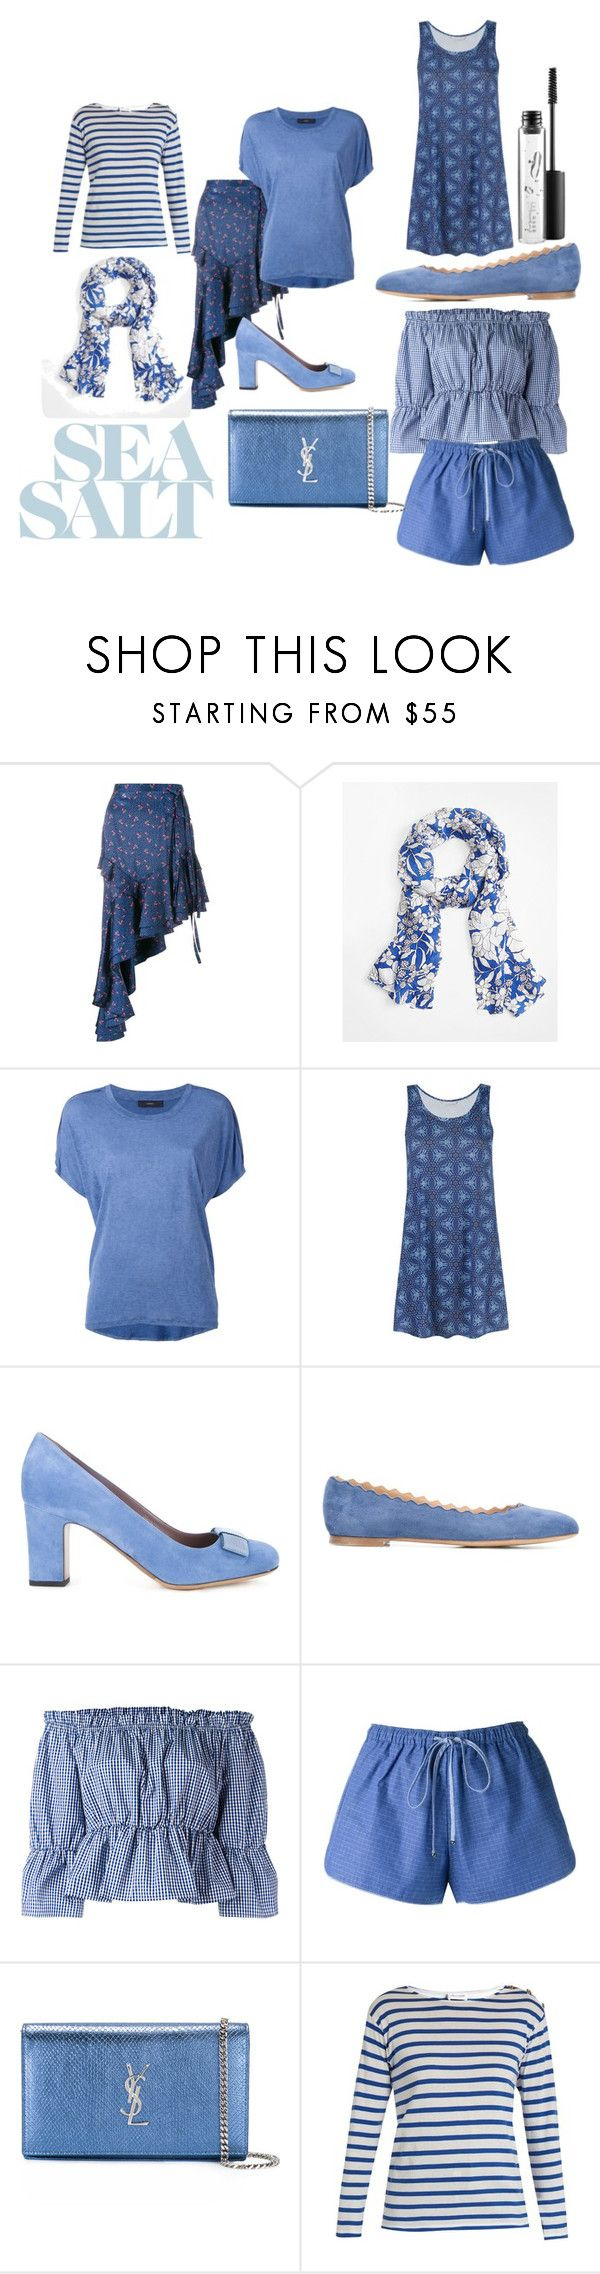 """""""It's my Creation¶"""" by racheal-taylor ❤ liked on Polyvore featuring Sandy Liang, Brooks Brothers, Diesel, Lygia & Nanny, Tabitha Simmons, Chloé, Dondup, Lilly Sarti, Yves Saint Laurent and MAC Cosmetics"""